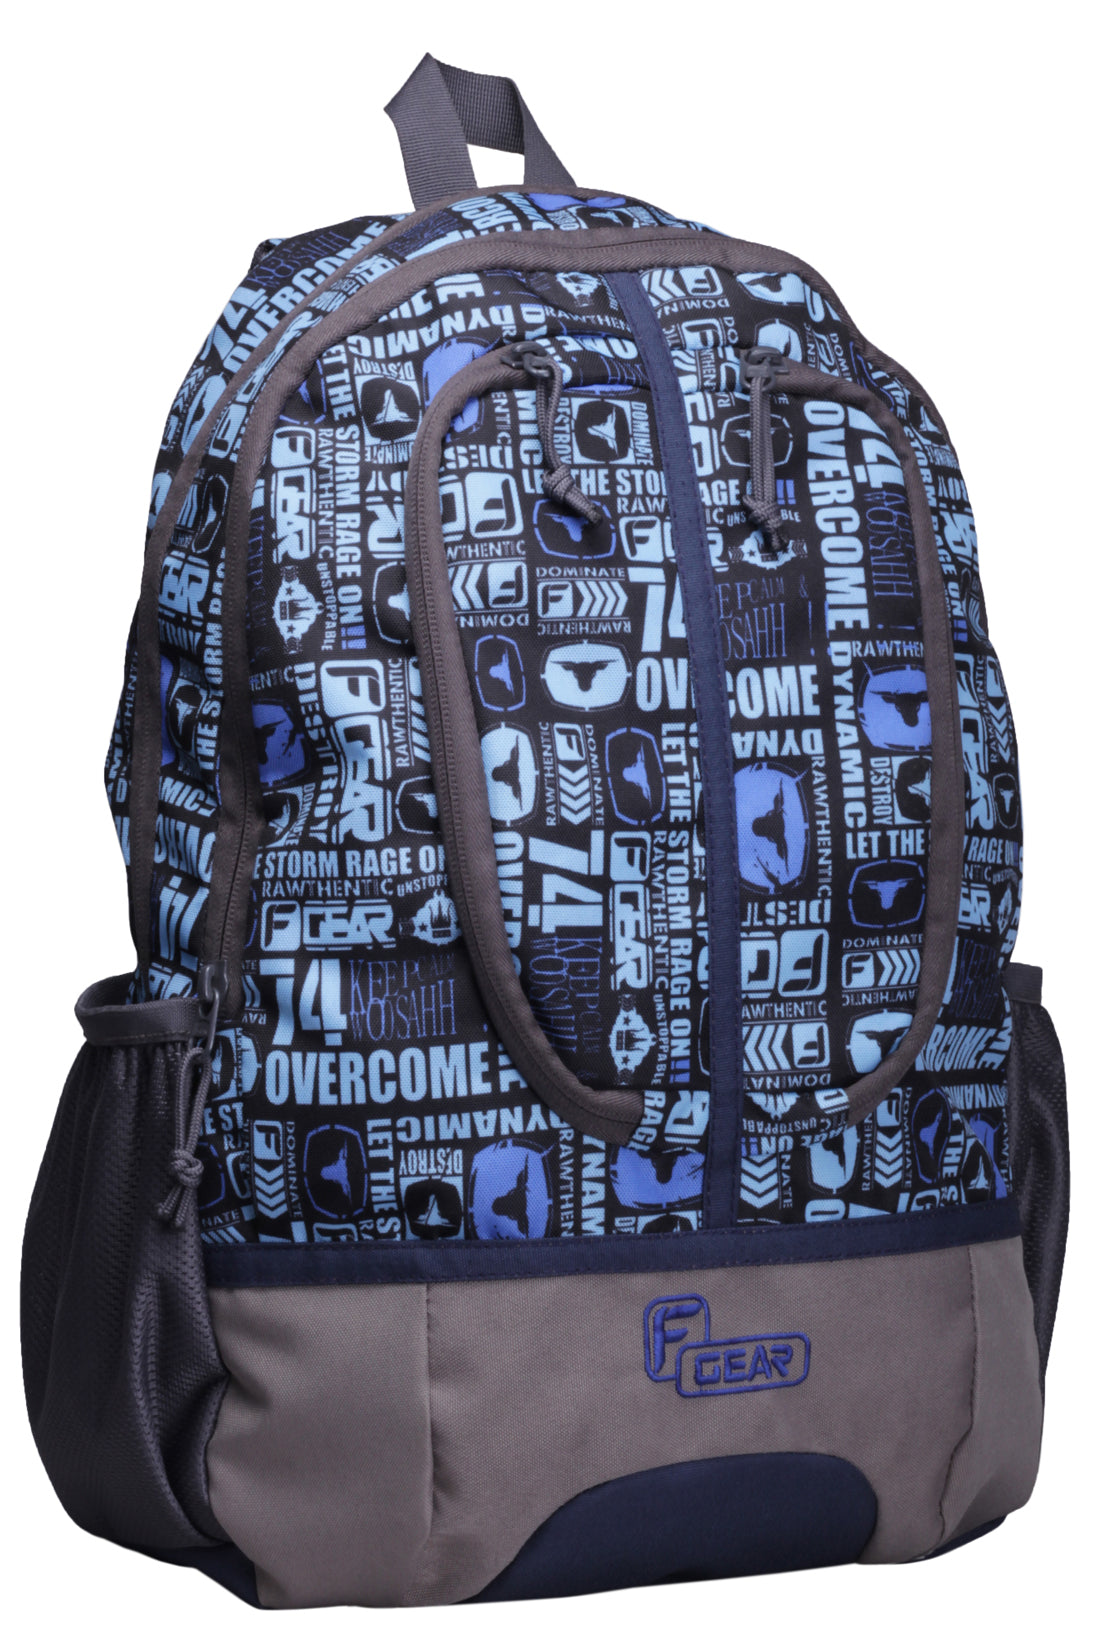 F Gear Dropsy P11 21 Liters Sky Blue Casual Laptop Backpack